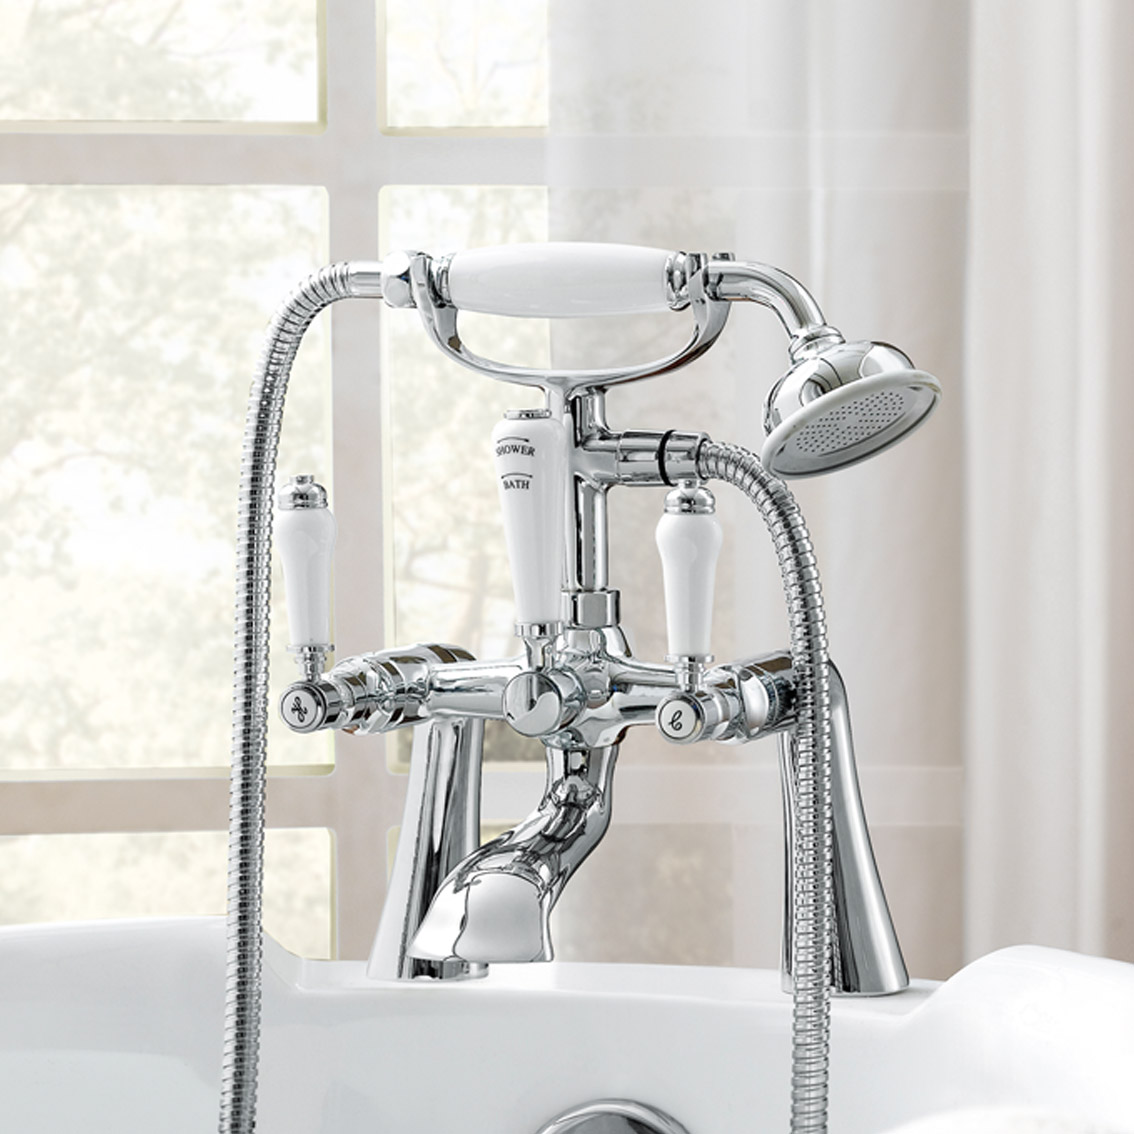 Chrome Traditional Bathroom Lever Handle Sink Bath Bidet Mixer Shower Taps. Chrome Traditional Bathroom Lever Handle Sink Bath Bidet Mixer